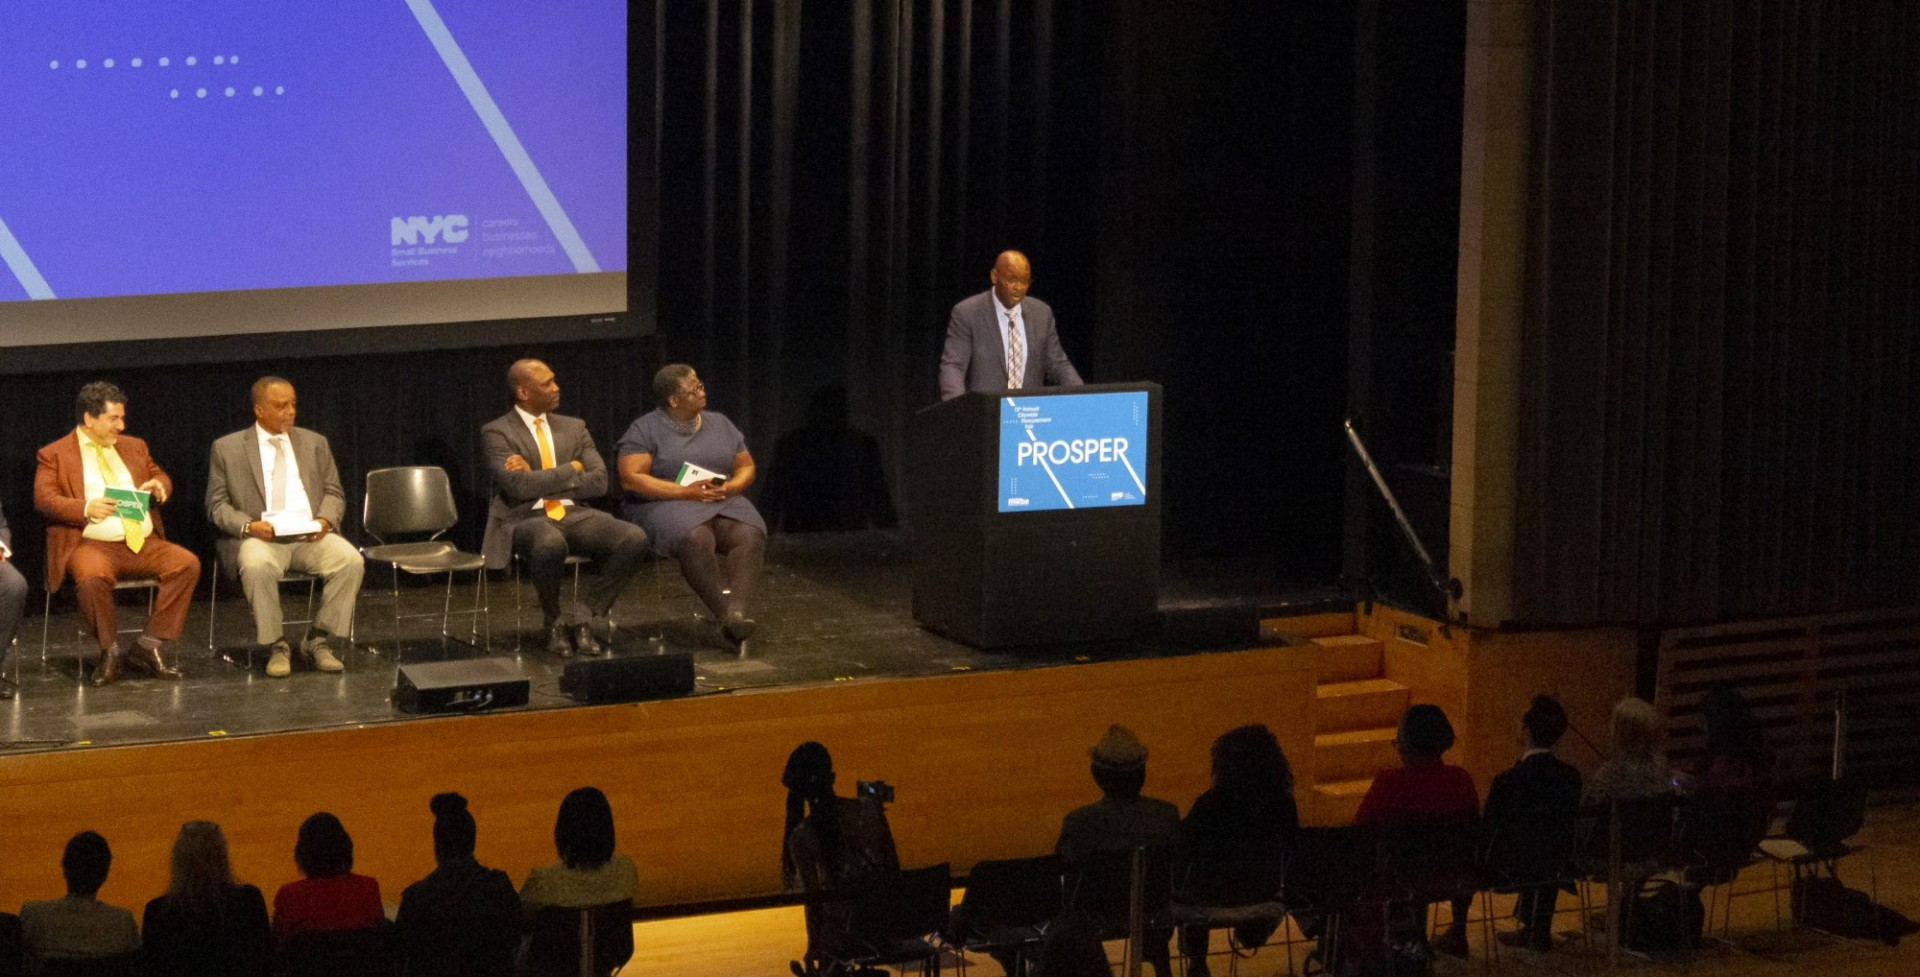 Cedric Gaddy, CUFO AVP for Capital Finance and Administrative Support, spoke to a full room at Lerner Hall for the NYC SBS Annual Procurement Fair.